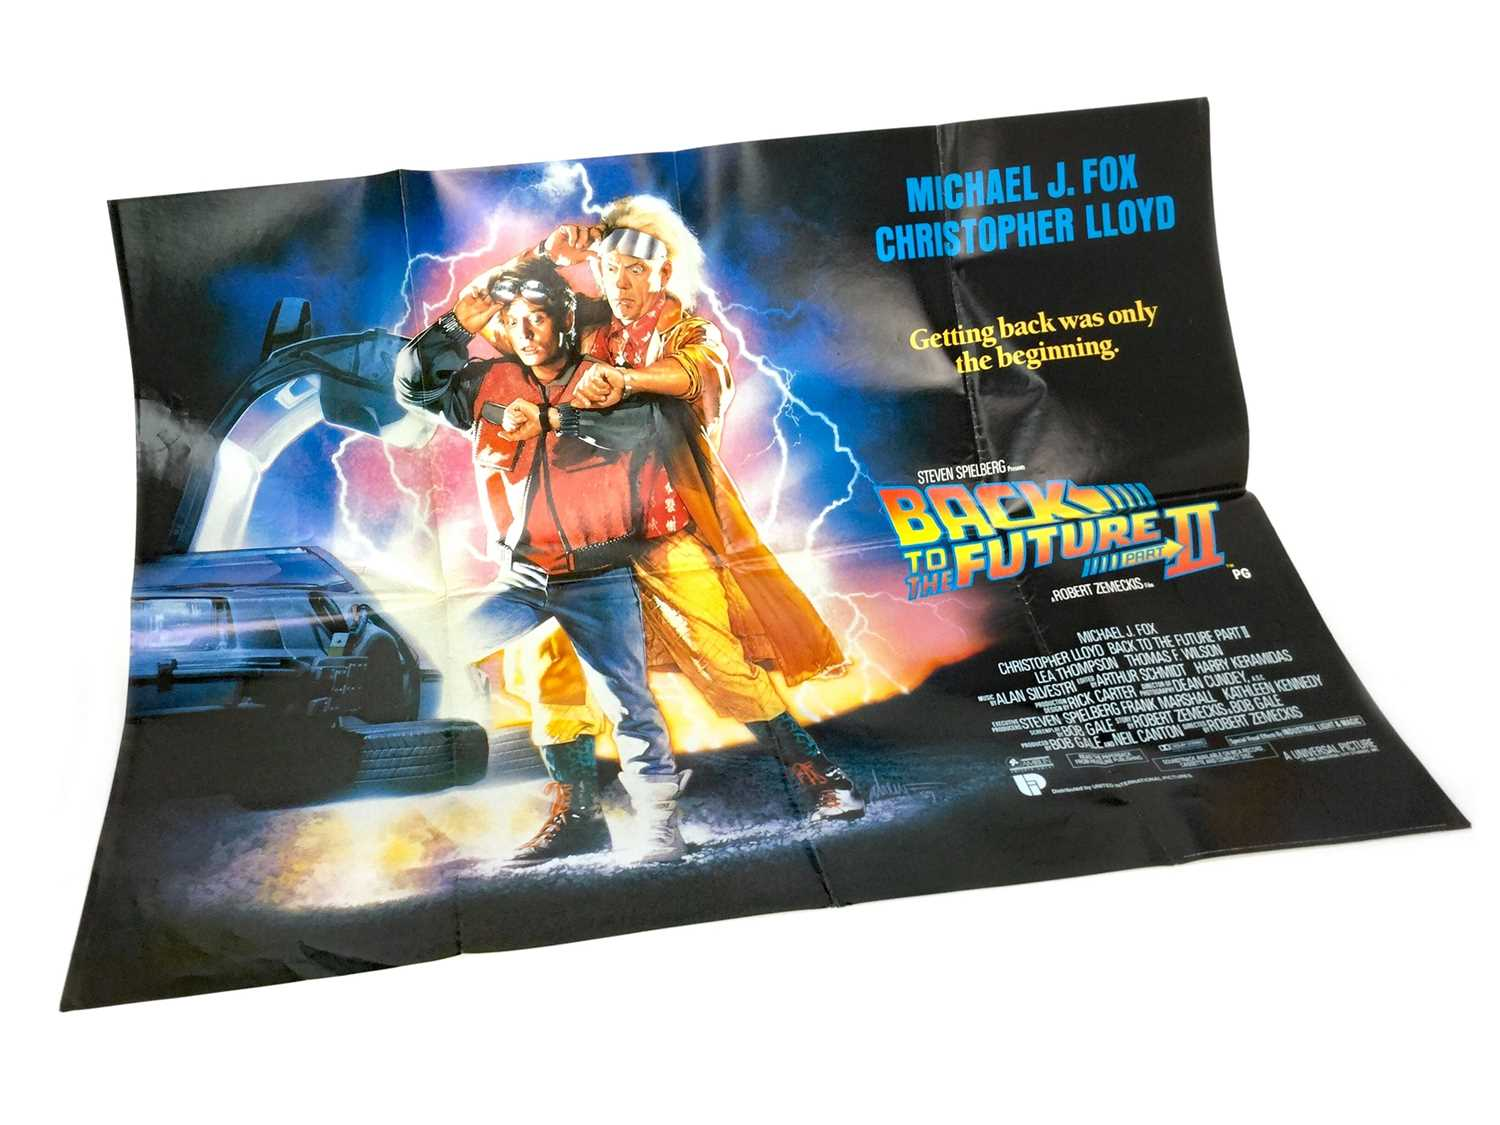 Lot 1341 - A BACK TO THE FUTURE II QUAD FILM POSTER